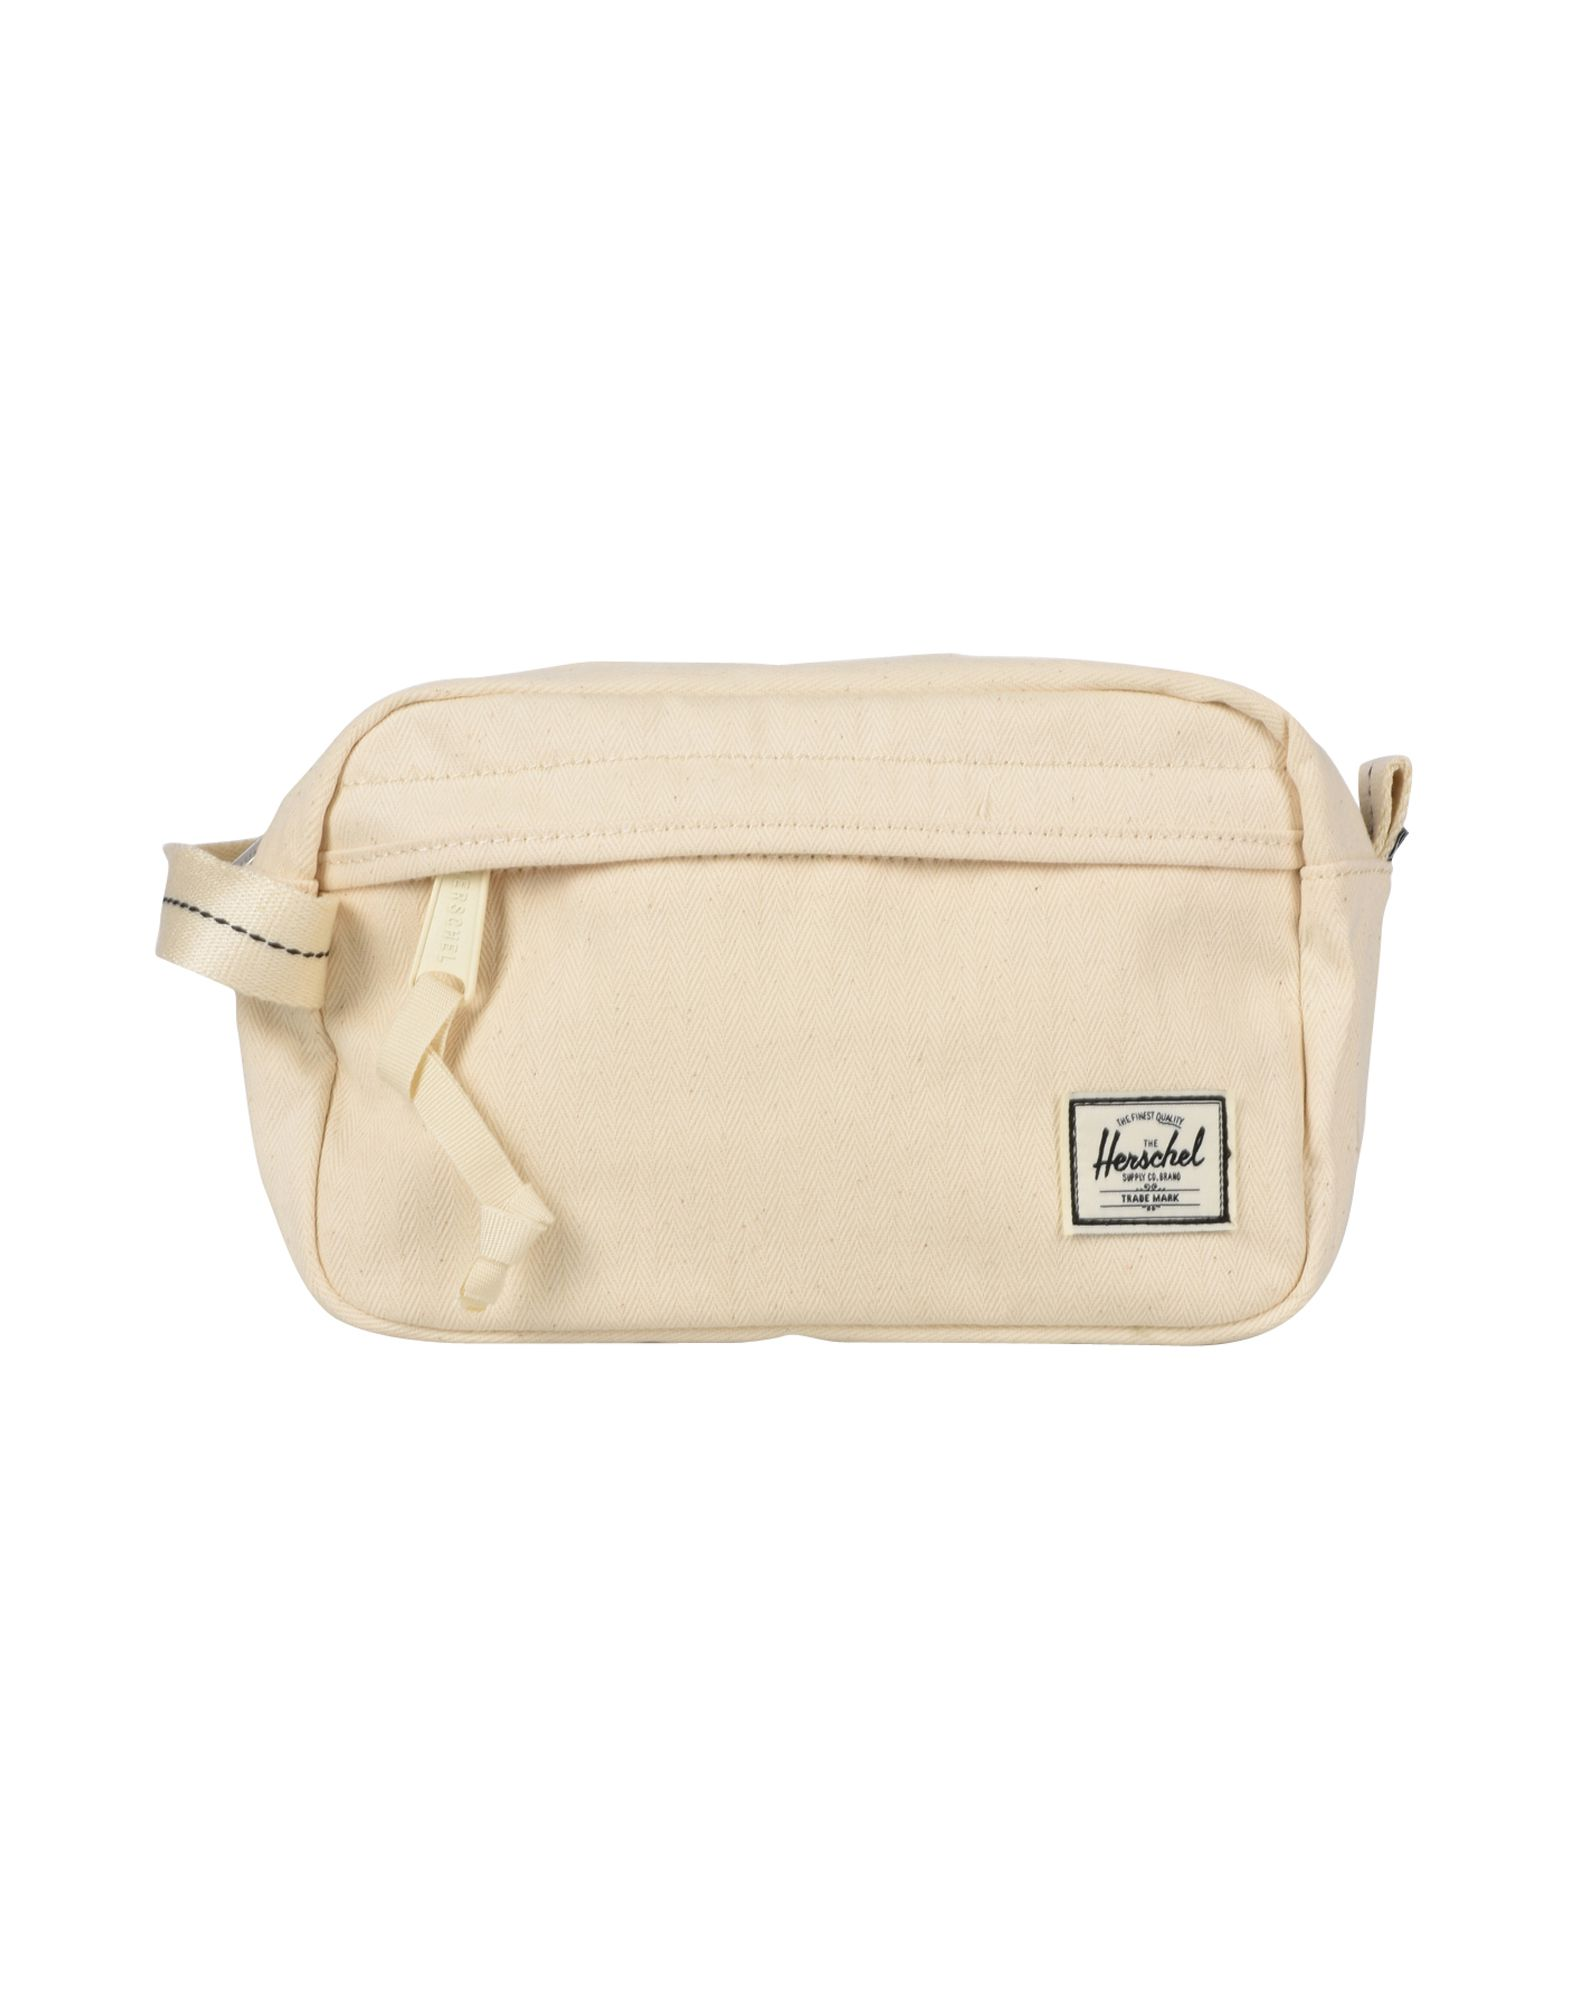 HERSCHEL SUPPLY CO. Beauty case yes beauty supply maricopa